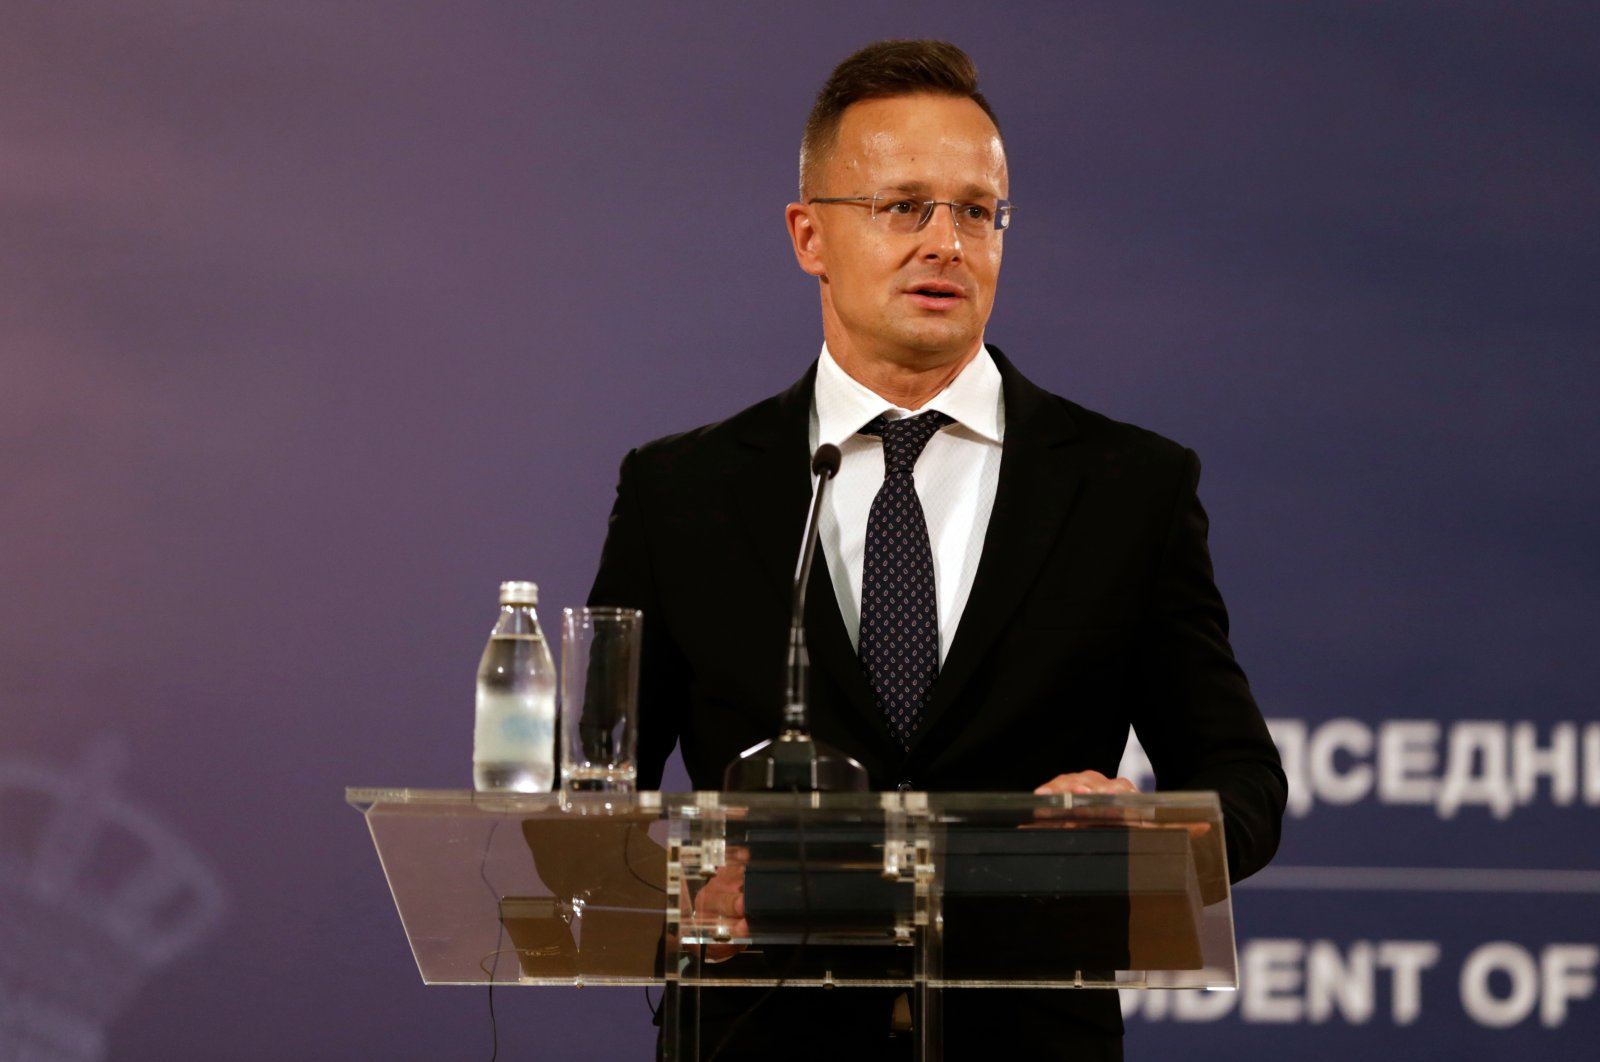 Hungarian Foreign Minister Peter Szijjarto addresses the media after a decoration ceremony in Belgrade, Serbia, July, 8, 2021. (EPA Photo)